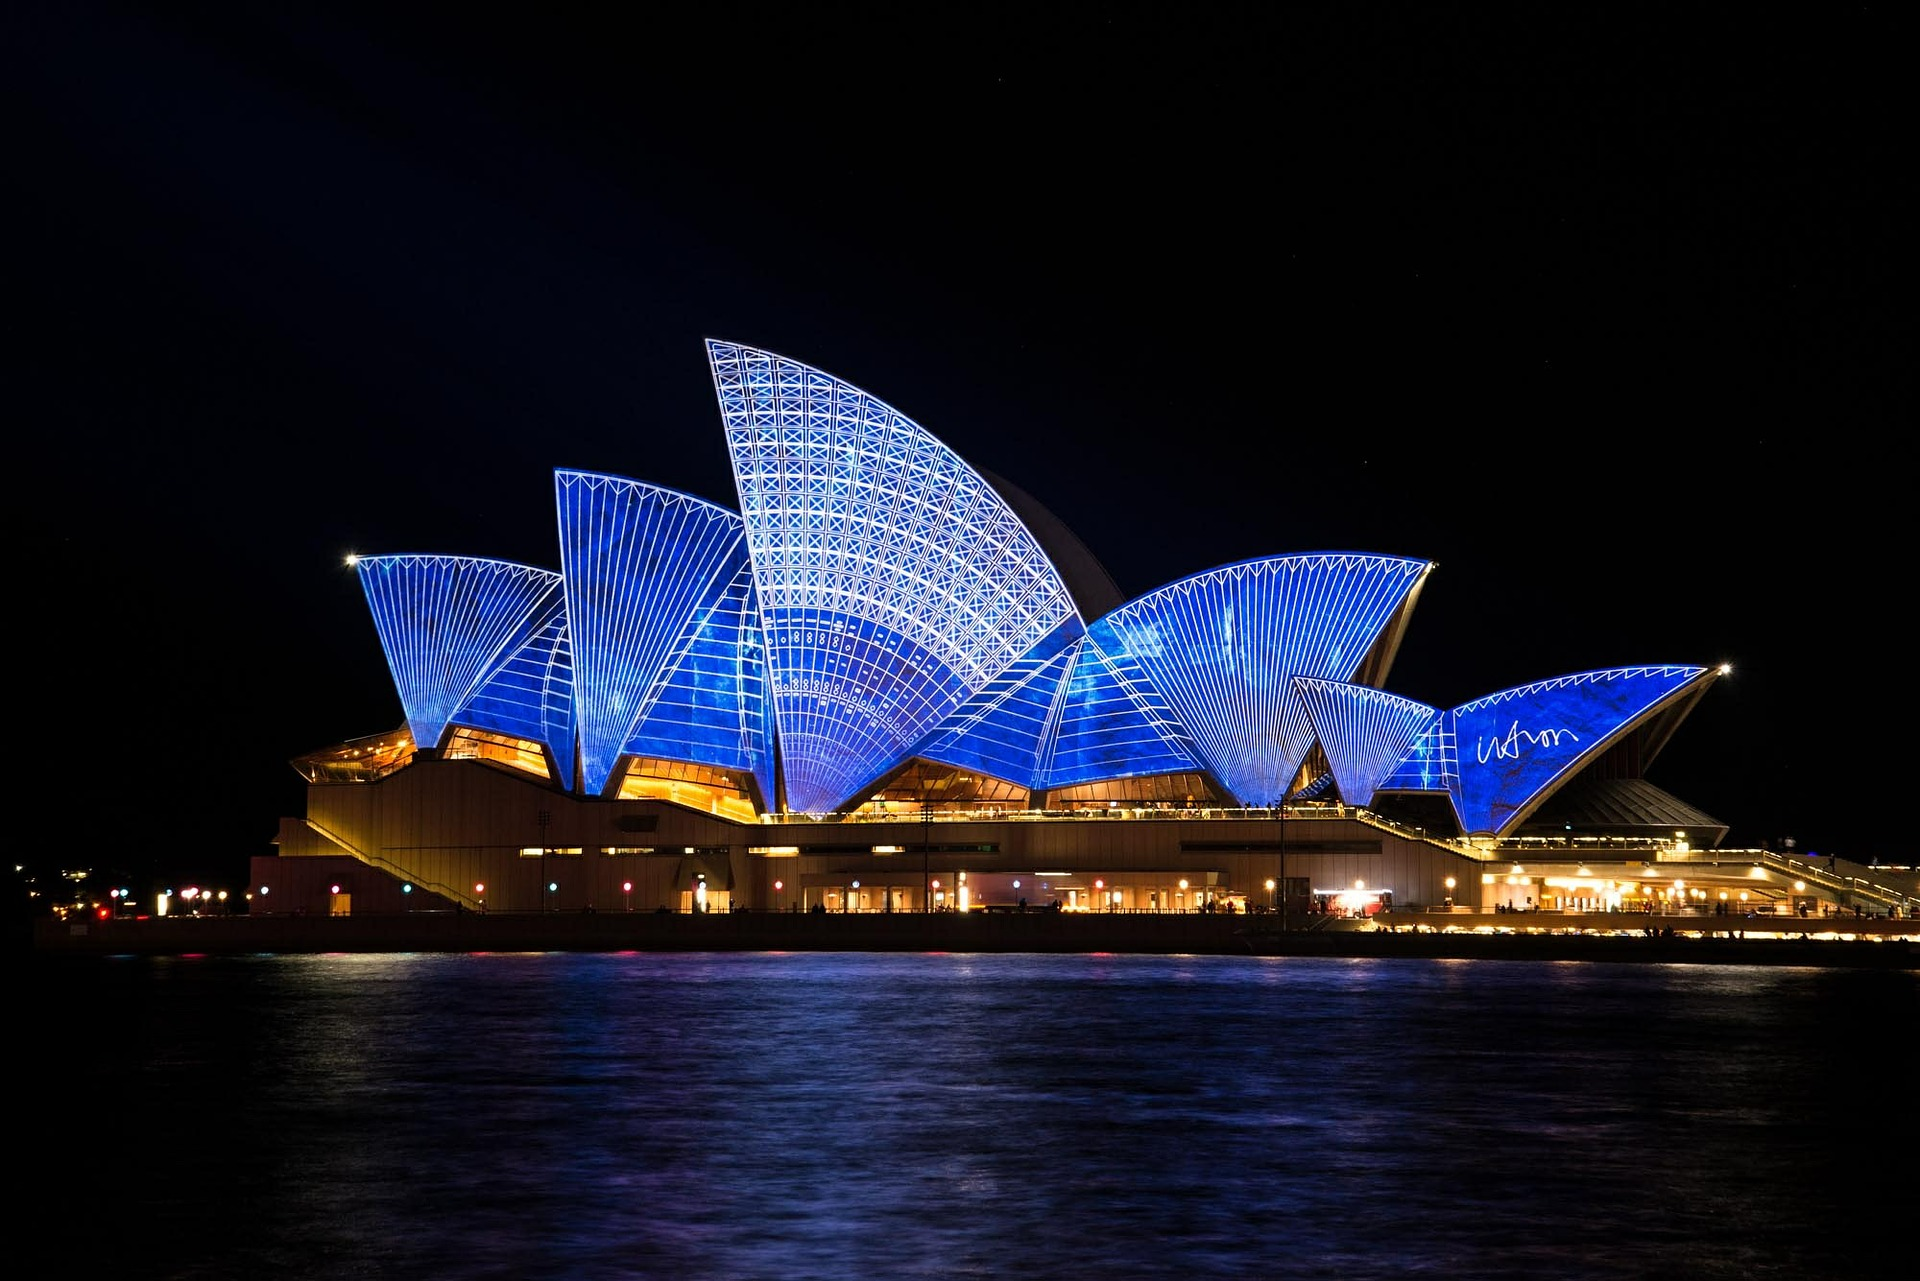 Australia / NZ Events - View upcoming events in Australia and New Zealand